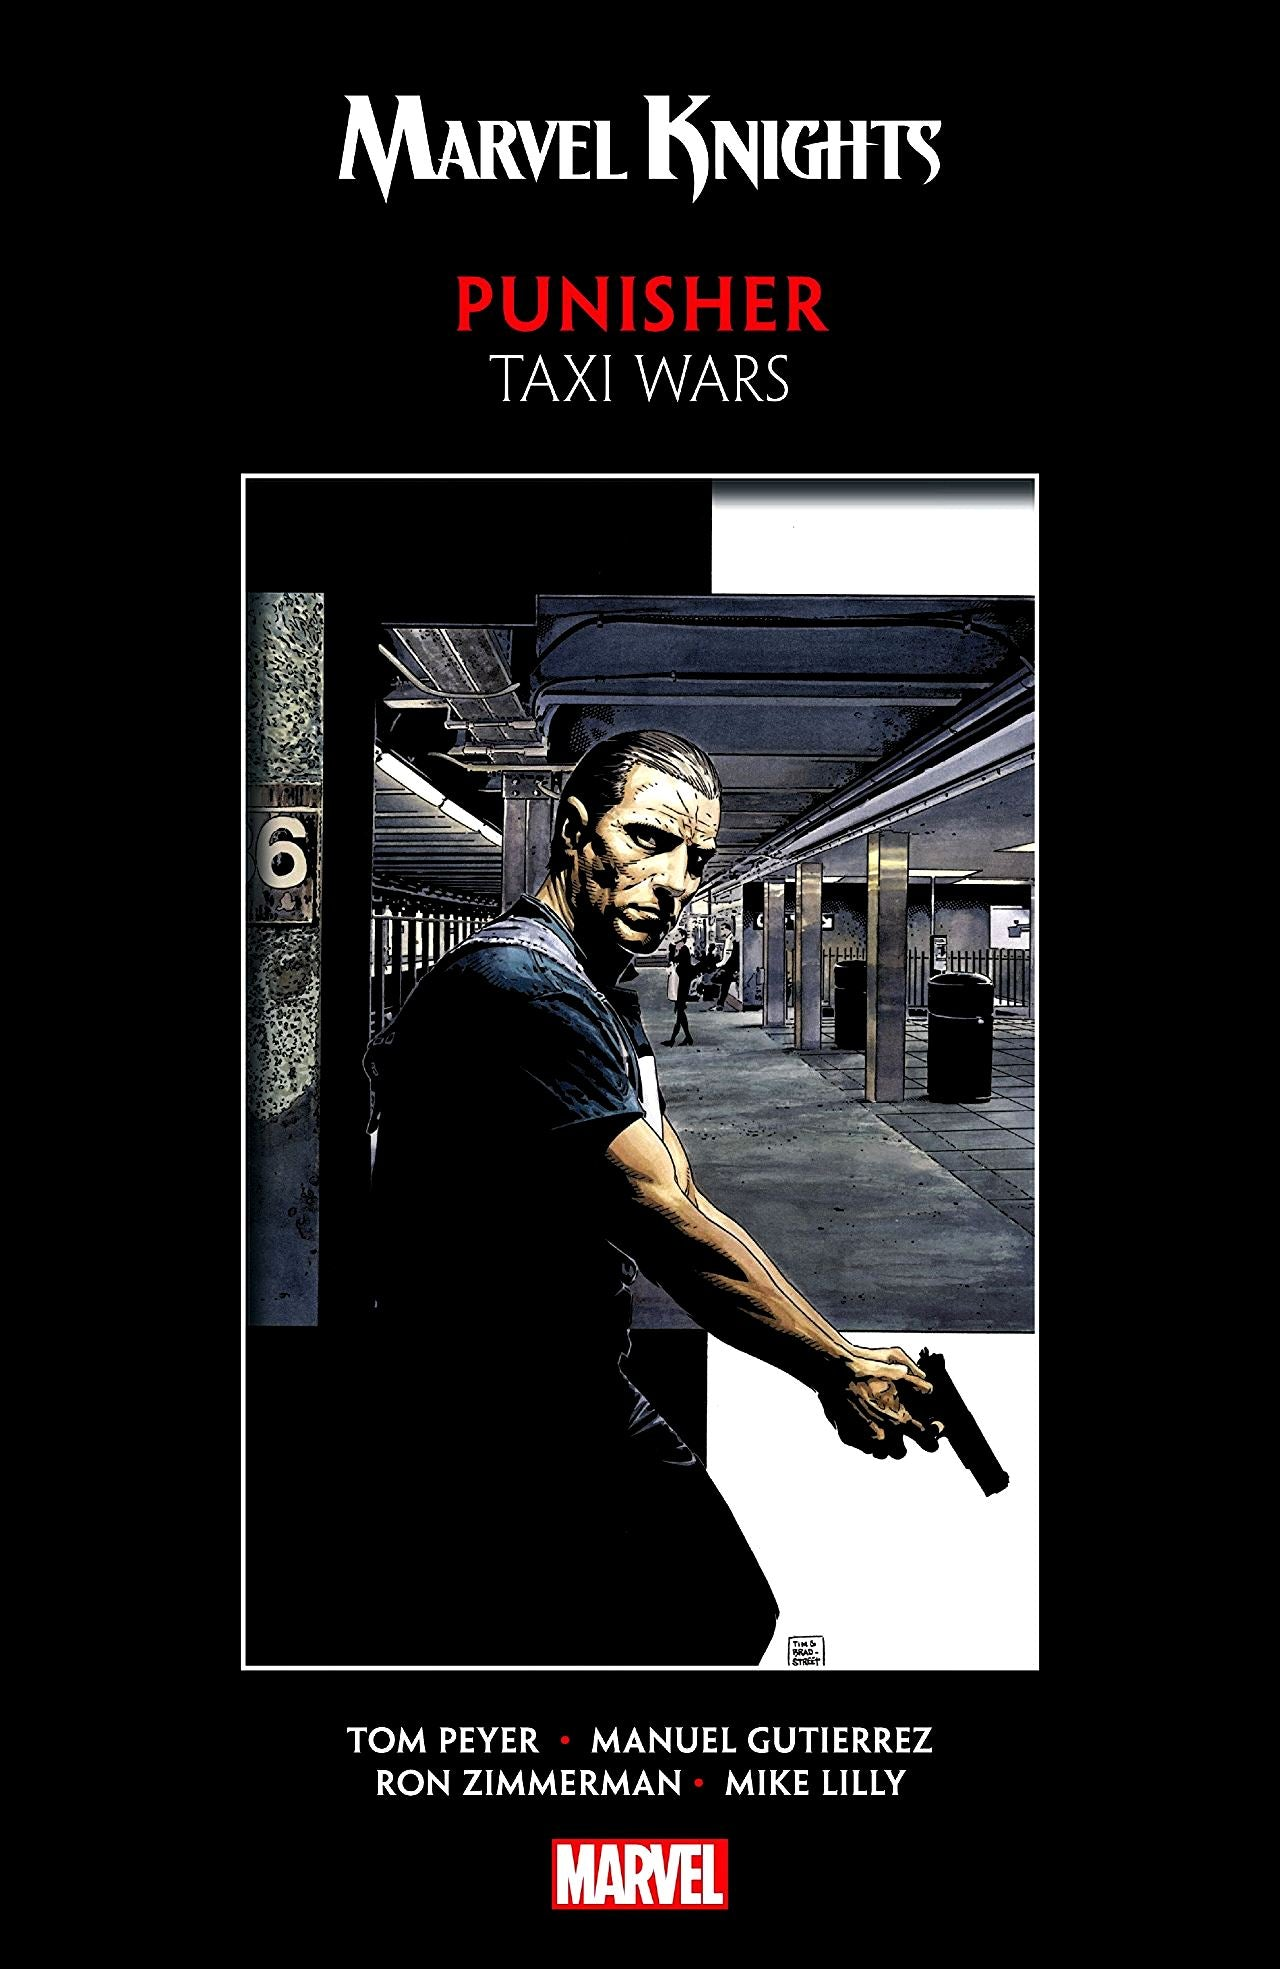 Marvel Knights: Punisher - Taxi Wars